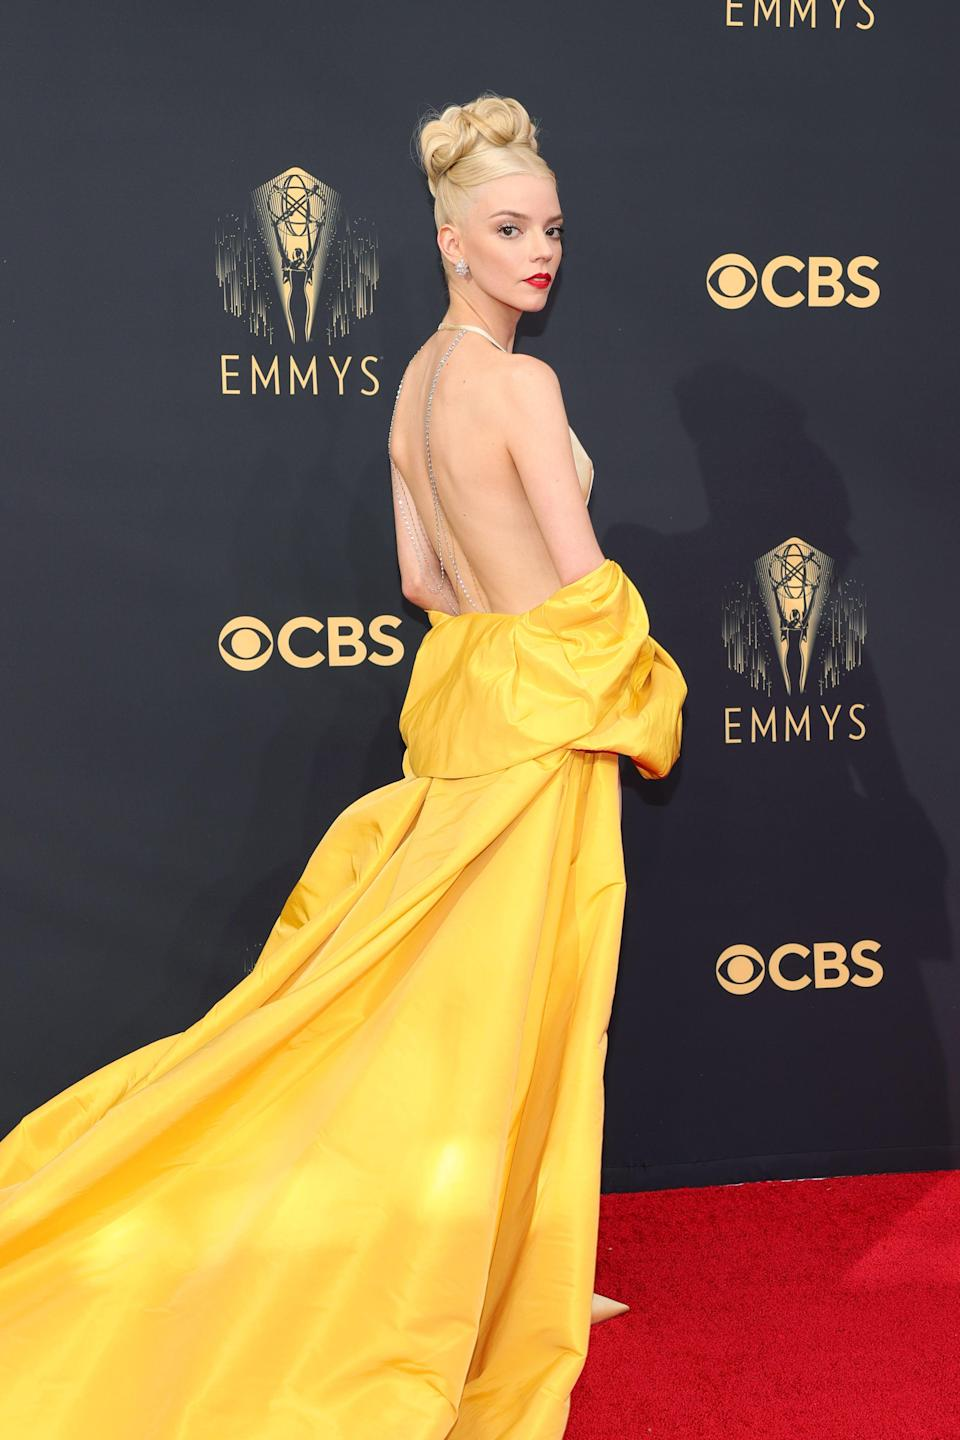 """<p>The 2021 Emmy Awards - aka the biggest night in television - turned into a triumphant night for British talent as <a href=""""https://www.goodhousekeeping.com/uk/lifestyle/a33595067/the-crown-season-5-cast-plot-air-date-spoilers/"""" rel=""""nofollow noopener"""" target=""""_blank"""" data-ylk=""""slk:The Crown"""" class=""""link rapid-noclick-resp"""">The Crown</a> swept the board, and writer and actress <a href=""""https://www.goodhousekeeping.com/uk/lifestyle/a32812581/michaela-coel-i-may-destroy-you-air-date-plot-review/"""" rel=""""nofollow noopener"""" target=""""_blank"""" data-ylk=""""slk:Michaela Coel"""" class=""""link rapid-noclick-resp"""">Michaela Coel</a> made history. Kate Winslet won Lead Actress for <a href=""""https://www.goodhousekeeping.com/uk/lifestyle/a37209963/mare-of-easttown-season-2-release-date/"""" rel=""""nofollow noopener"""" target=""""_blank"""" data-ylk=""""slk:Mare of Easttown"""" class=""""link rapid-noclick-resp"""">Mare of Easttown</a>, while Ewan McGregor won the top actor award for his role as late designer Halston. </p><p>Olivia Colman, Tobias Menzies, Gillian Anderson, and Josh O'Conner all won acting prizes for Netflix's royal drama, while Coel won outstanding writing for a limited series for her drama I May Destroy You, becoming the first Black woman to win the award. </p><p>Stars gracing the red carpet included Catherine Zeta-Jones, Cynthia Erivo, The Queen Gambit's Anya Taylor-Joy, Pose's Billy Porter, and The Crown's Emma Corrin... </p>"""